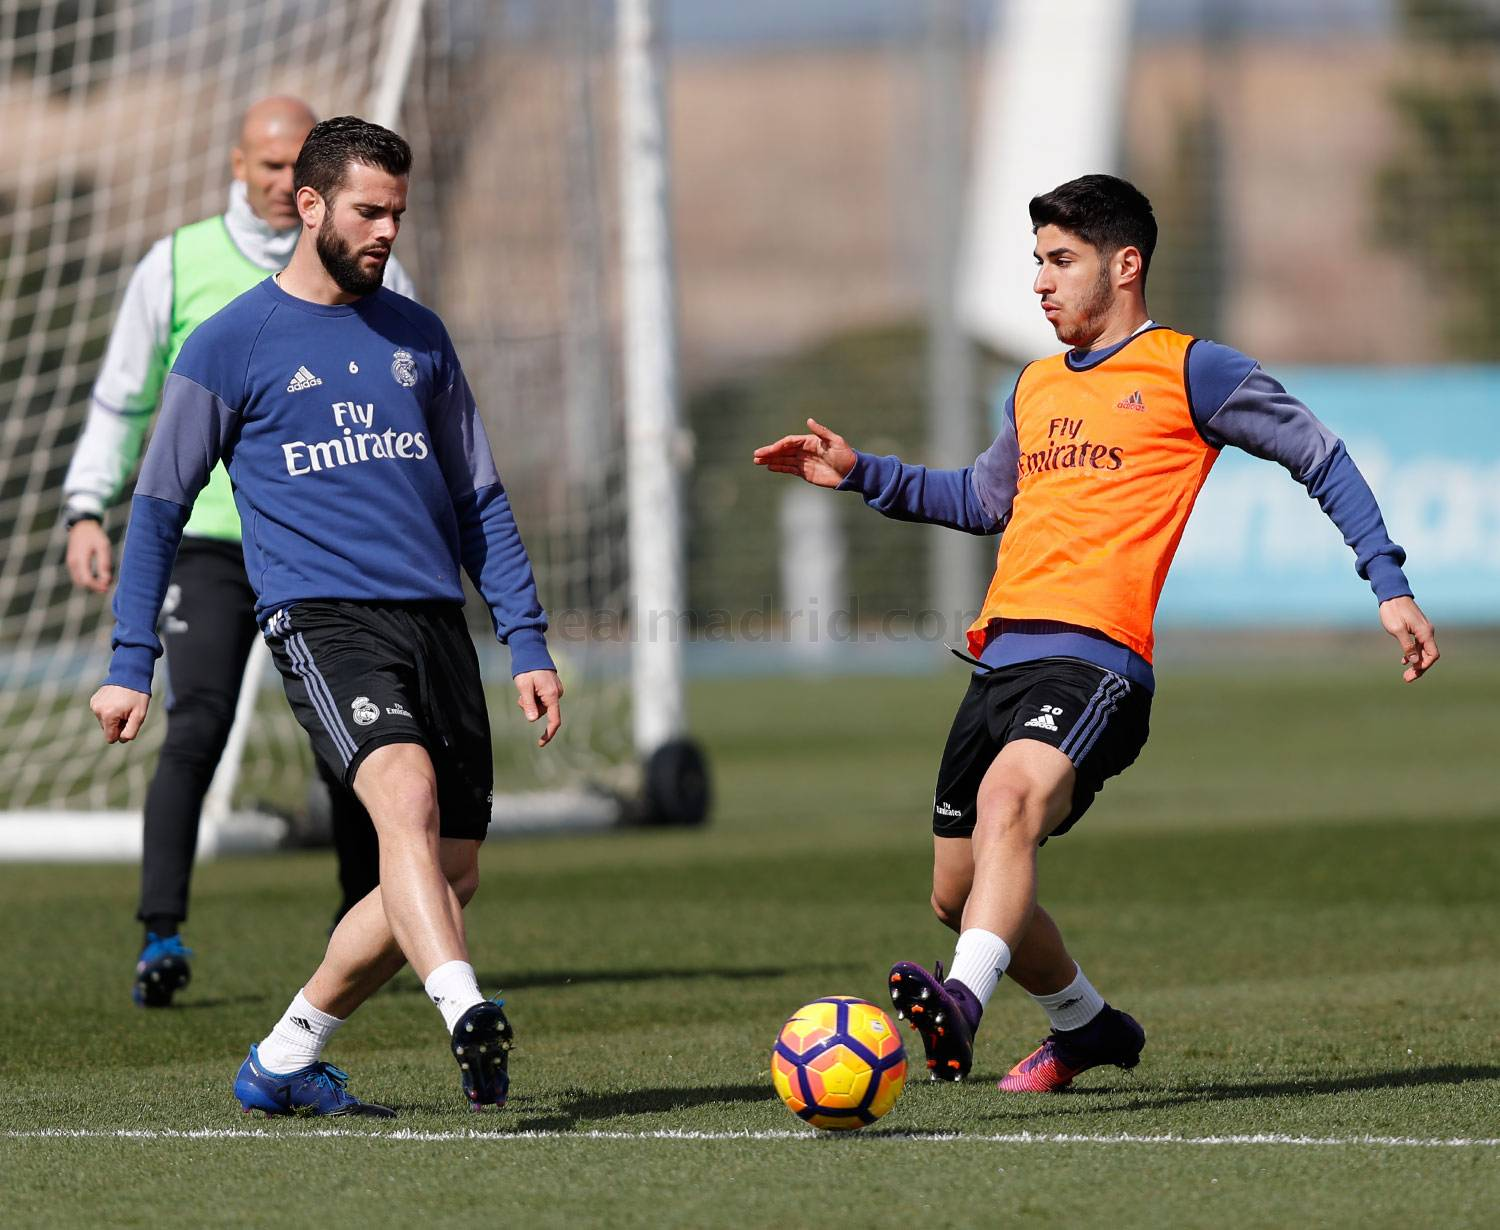 Real Madrid - Entrenamiento del Real Madrid - 27-02-2017